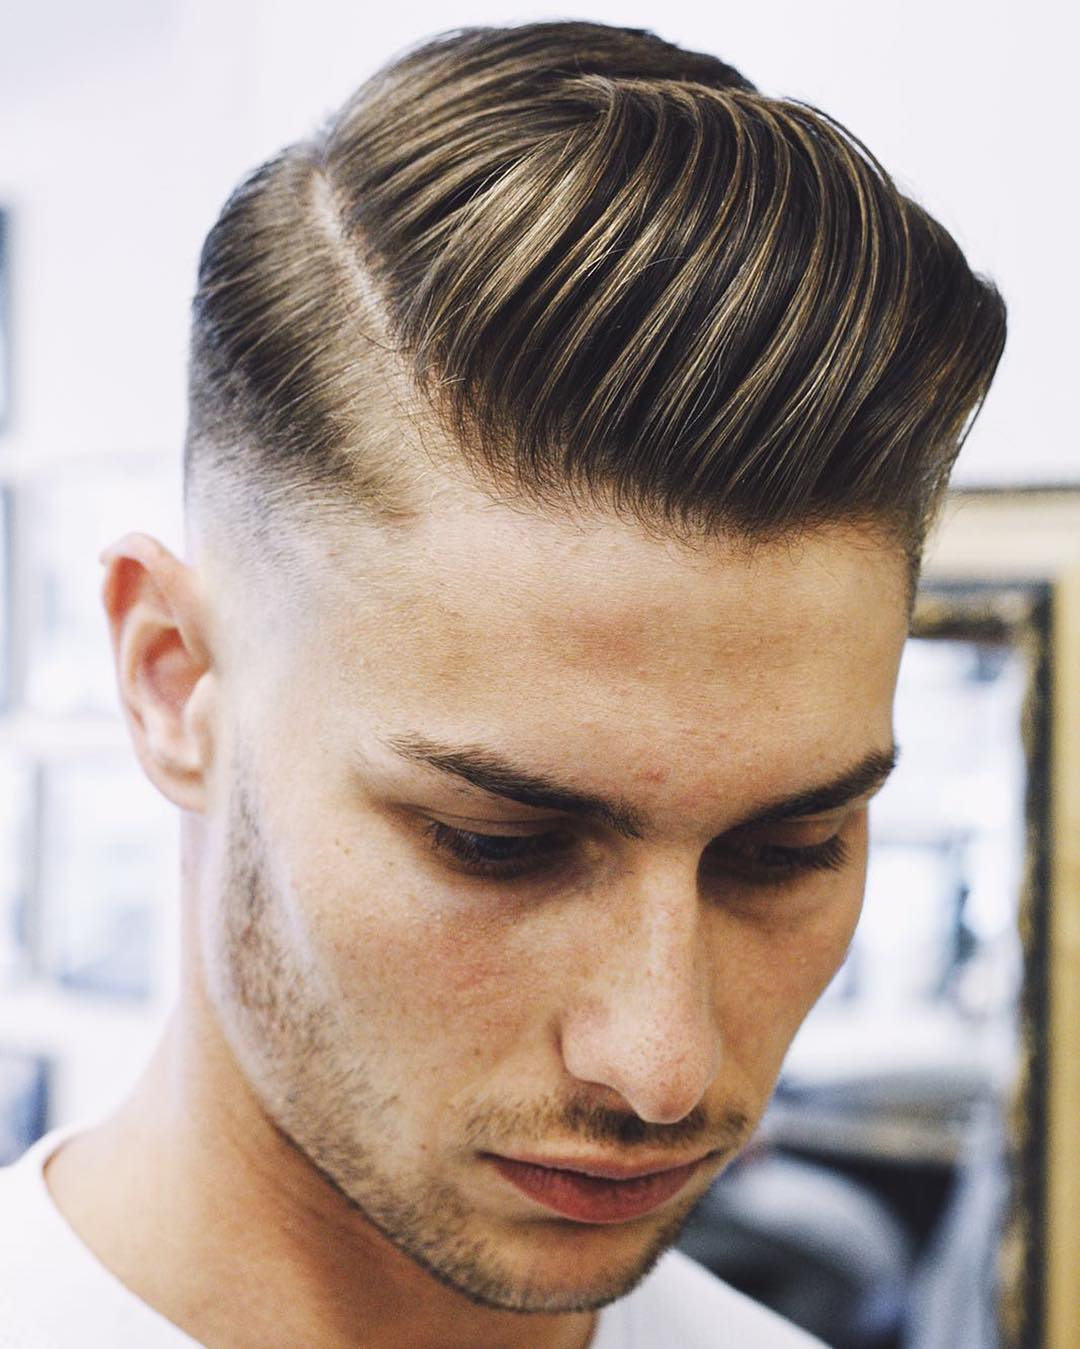 Top 100 Men S Haircuts Hairstyles For Men February 2019 Update